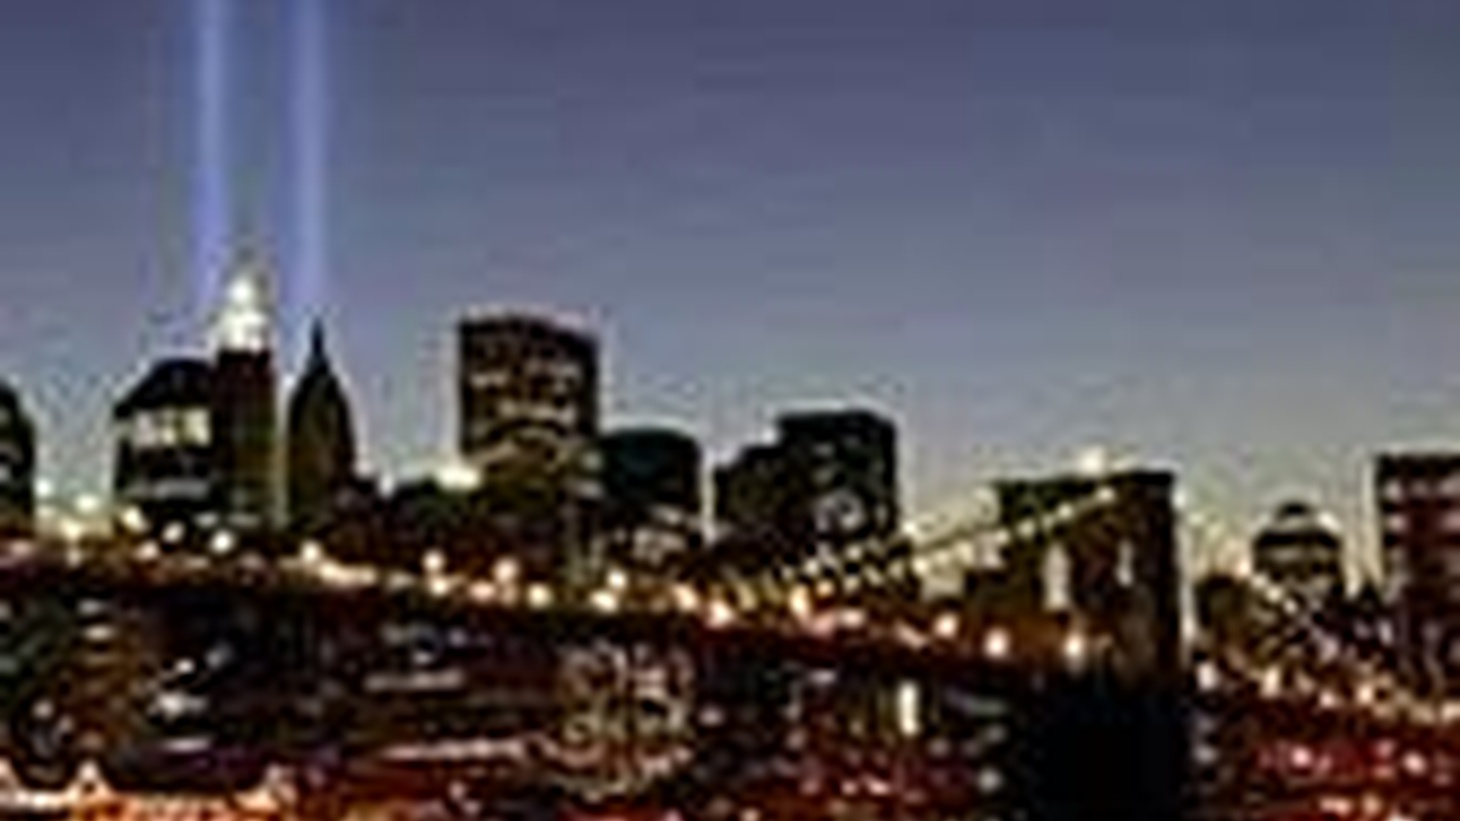 For the fifth anniversary of September 11, American RadioWorks rebroadcasts the beautifully haunting documentary from the Sonic Memorial Project.